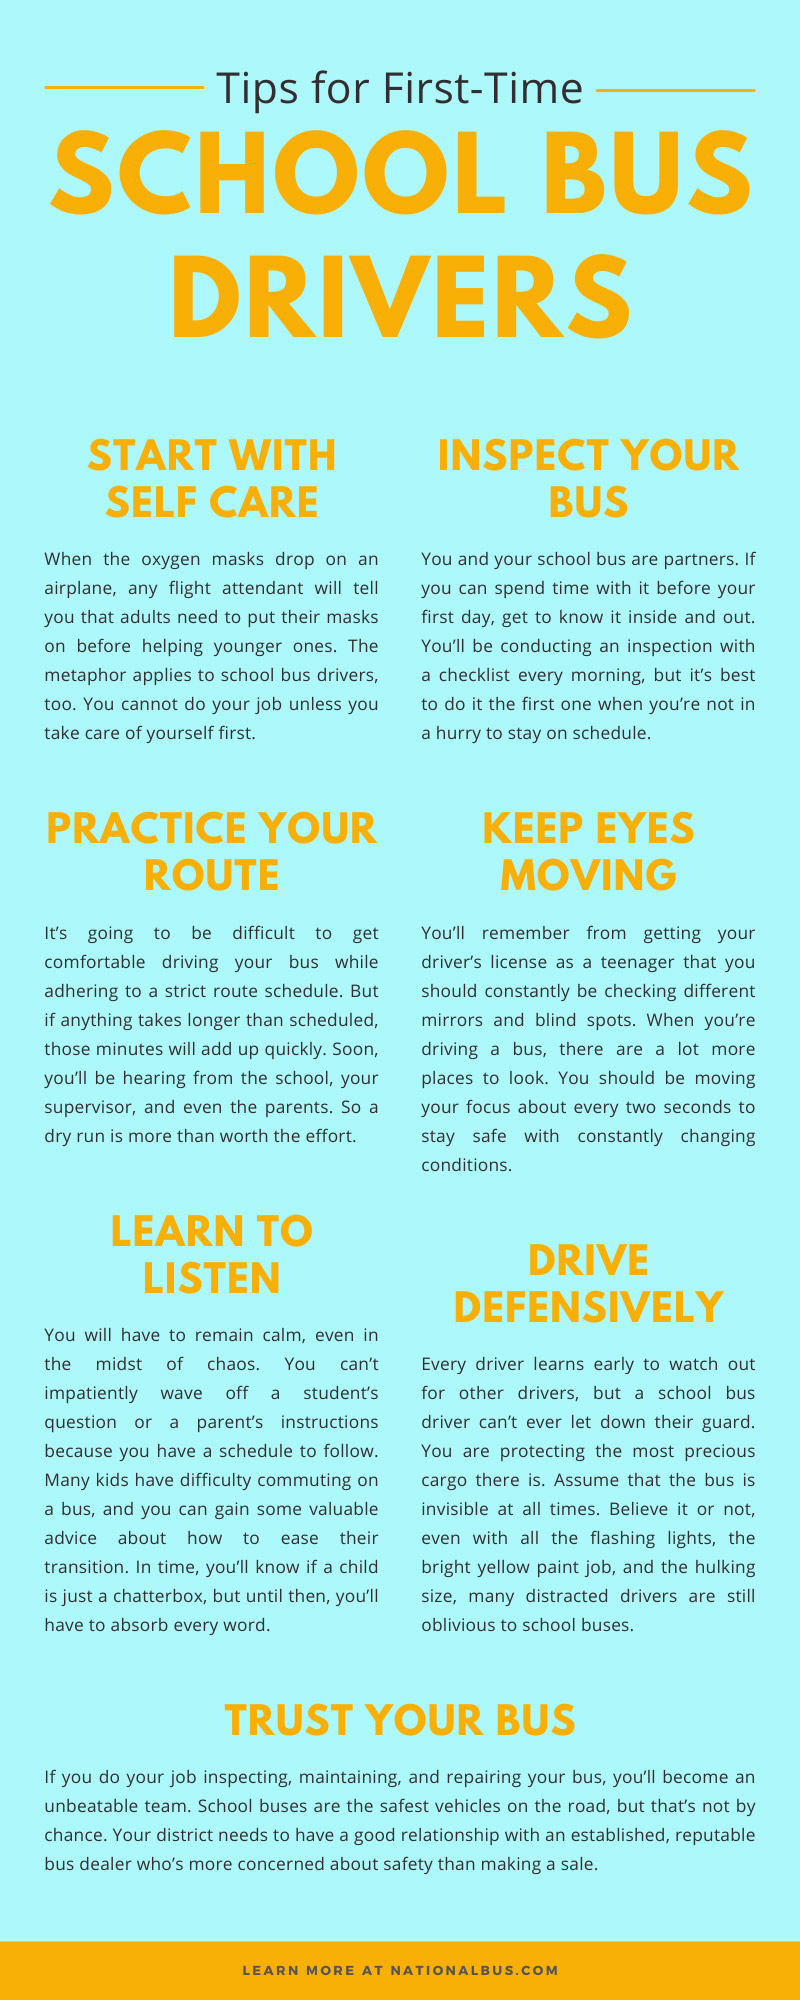 Seven Tips for First-Time School Bus Drivers